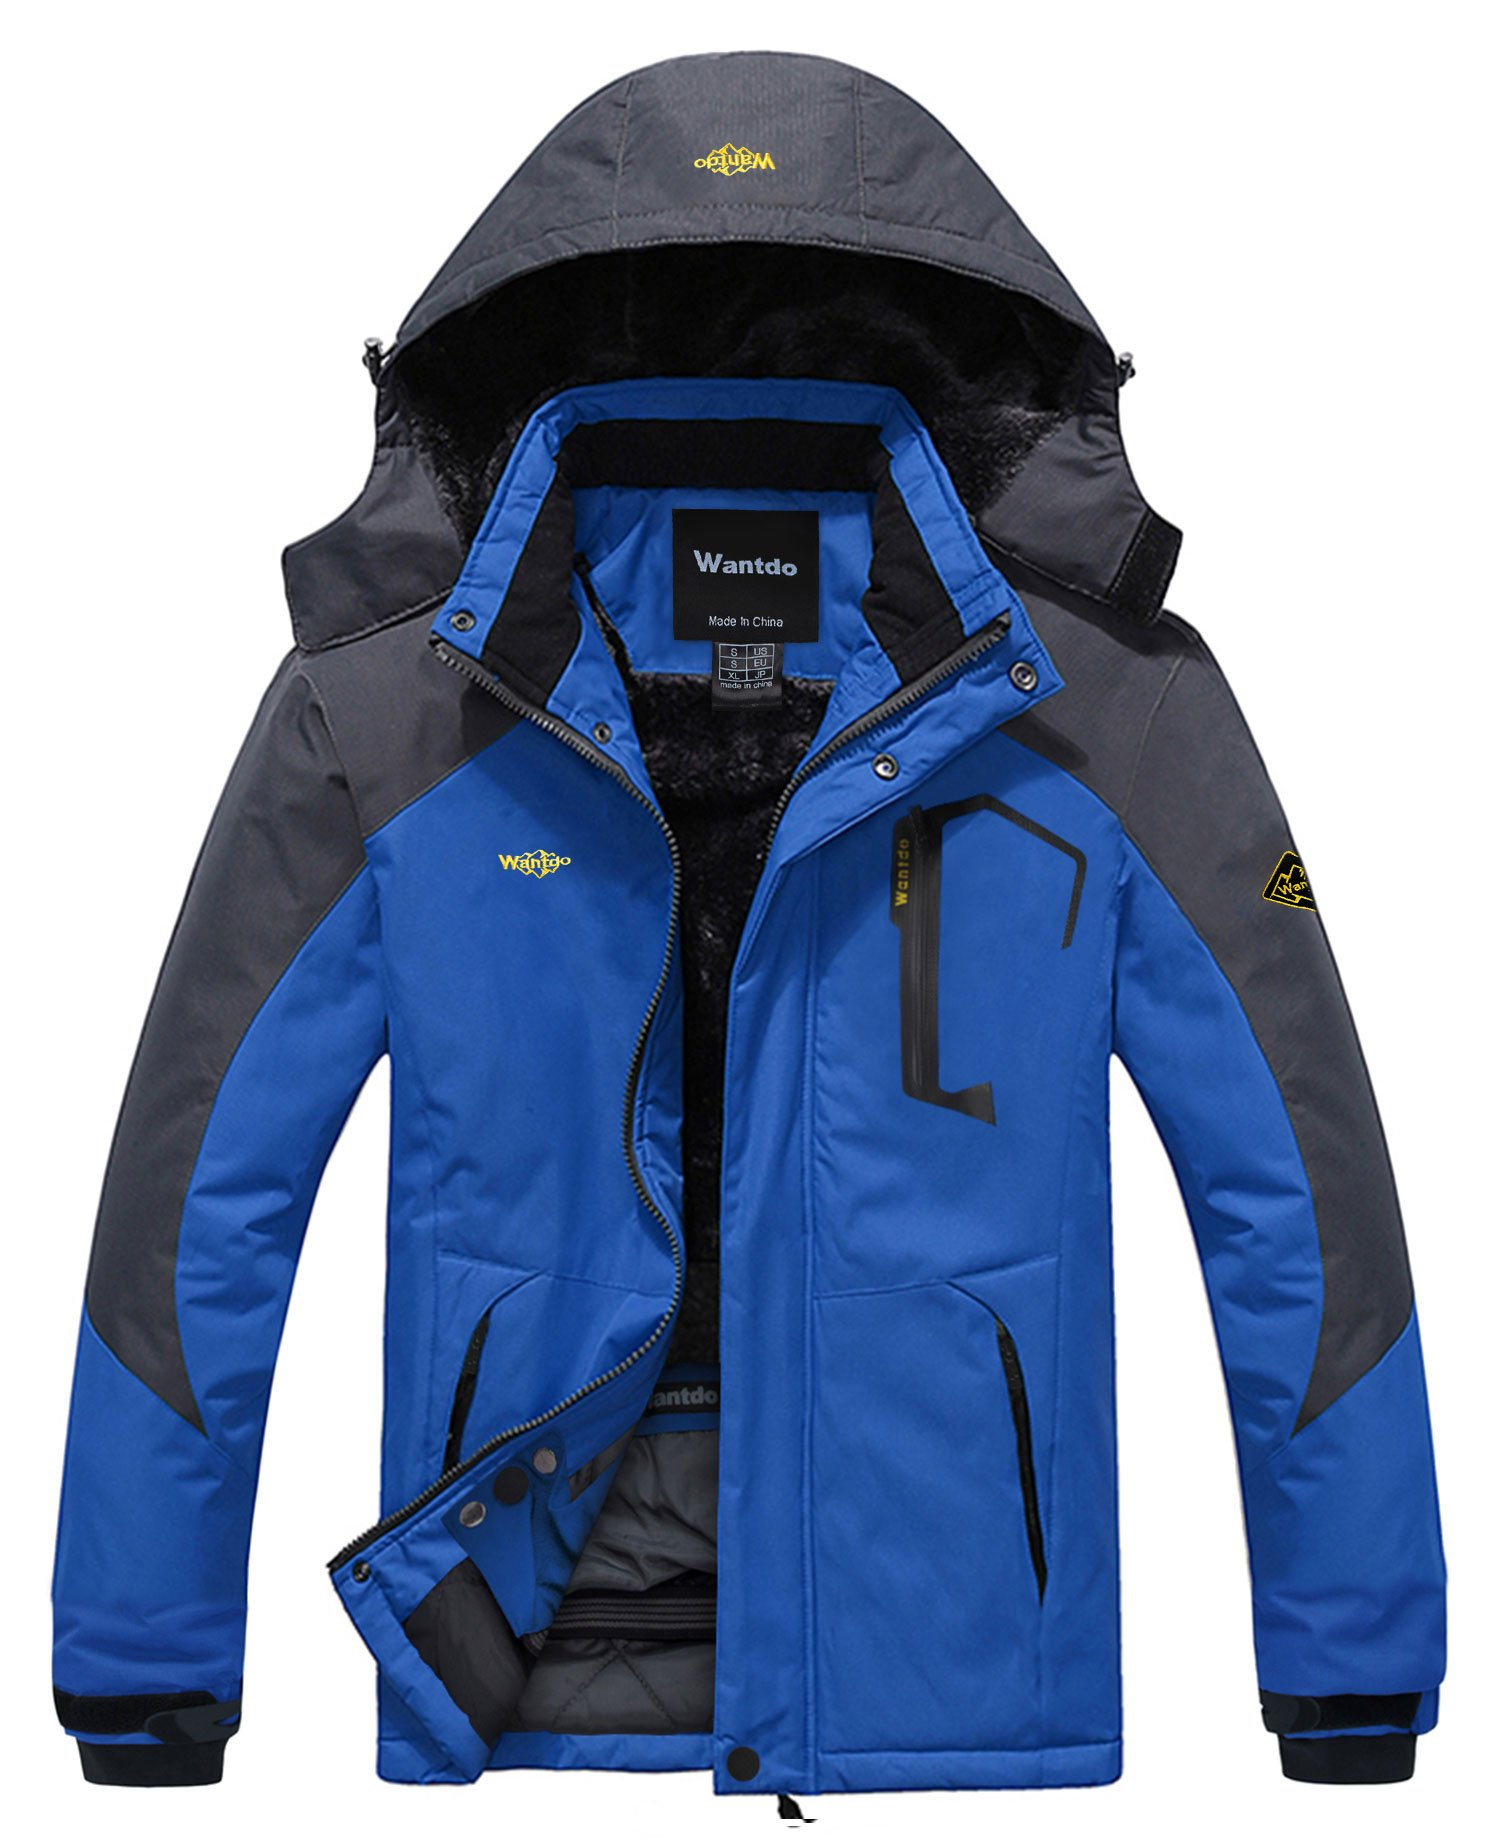 Wantdo Men's Waterproof Mountain Jacket Fleece Windproof Ski Jacket US 2XL  Sky Blue 2XL